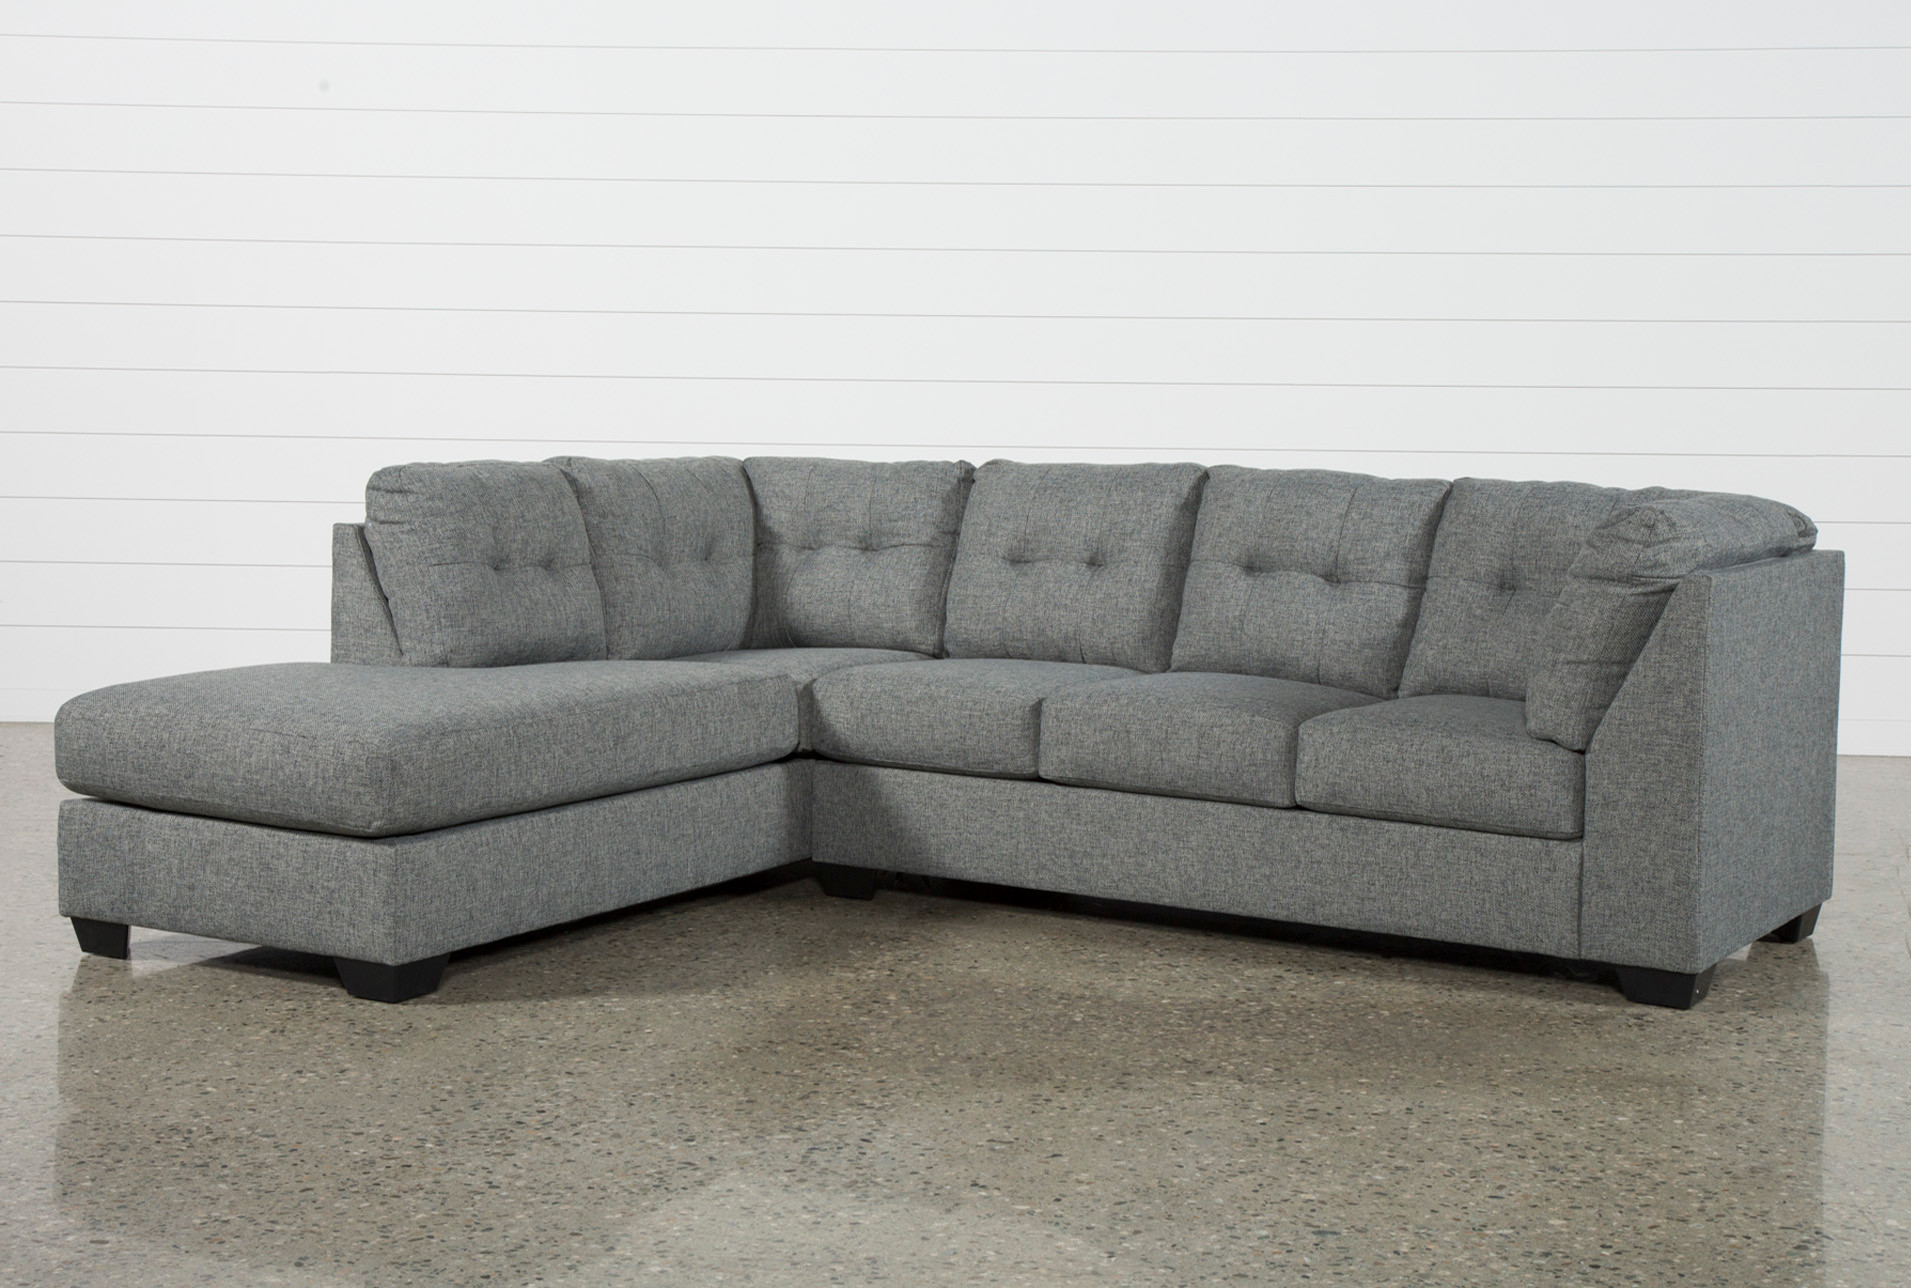 Arrowmask 2 Piece Sectional W/Laf Chaise (Qty: 1) Has Been Successfully  Added To Your Cart.